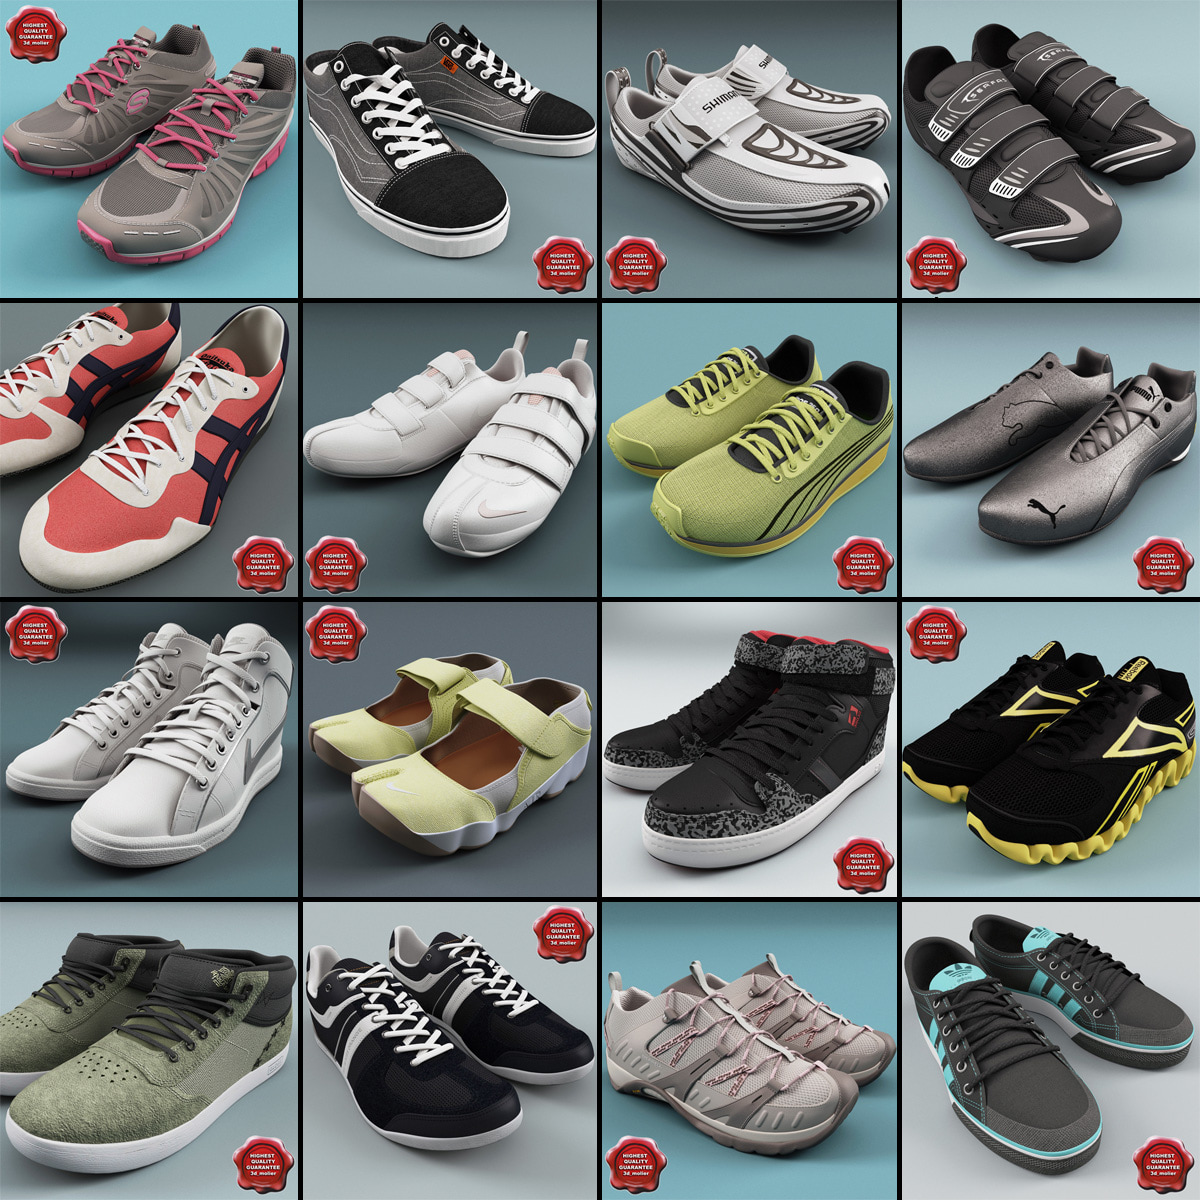 3ds max sneakers v9